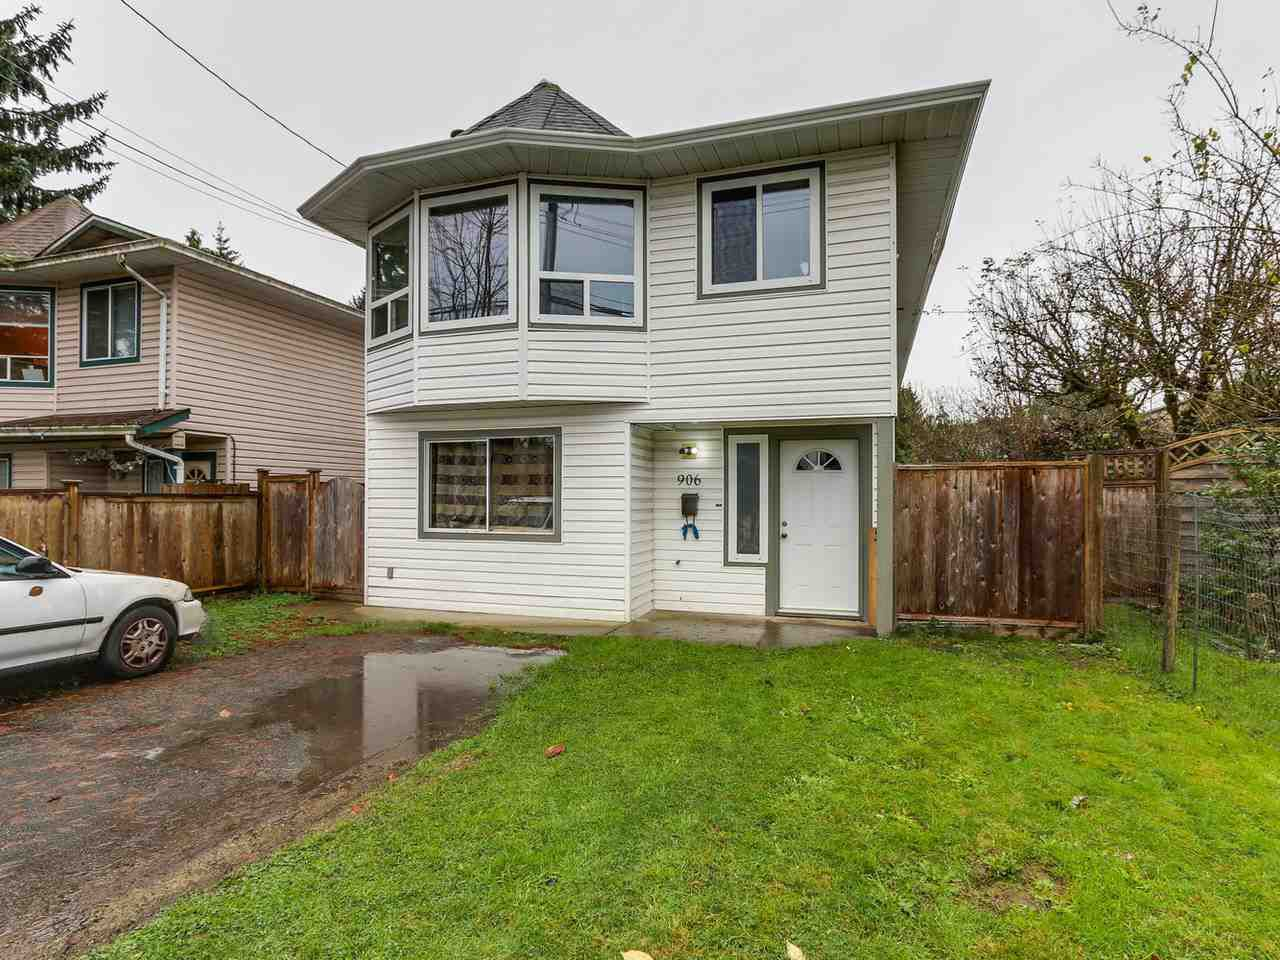 Main Photo: 906 WESTWOOD Street in Coquitlam: Meadow Brook House for sale : MLS®# R2125597